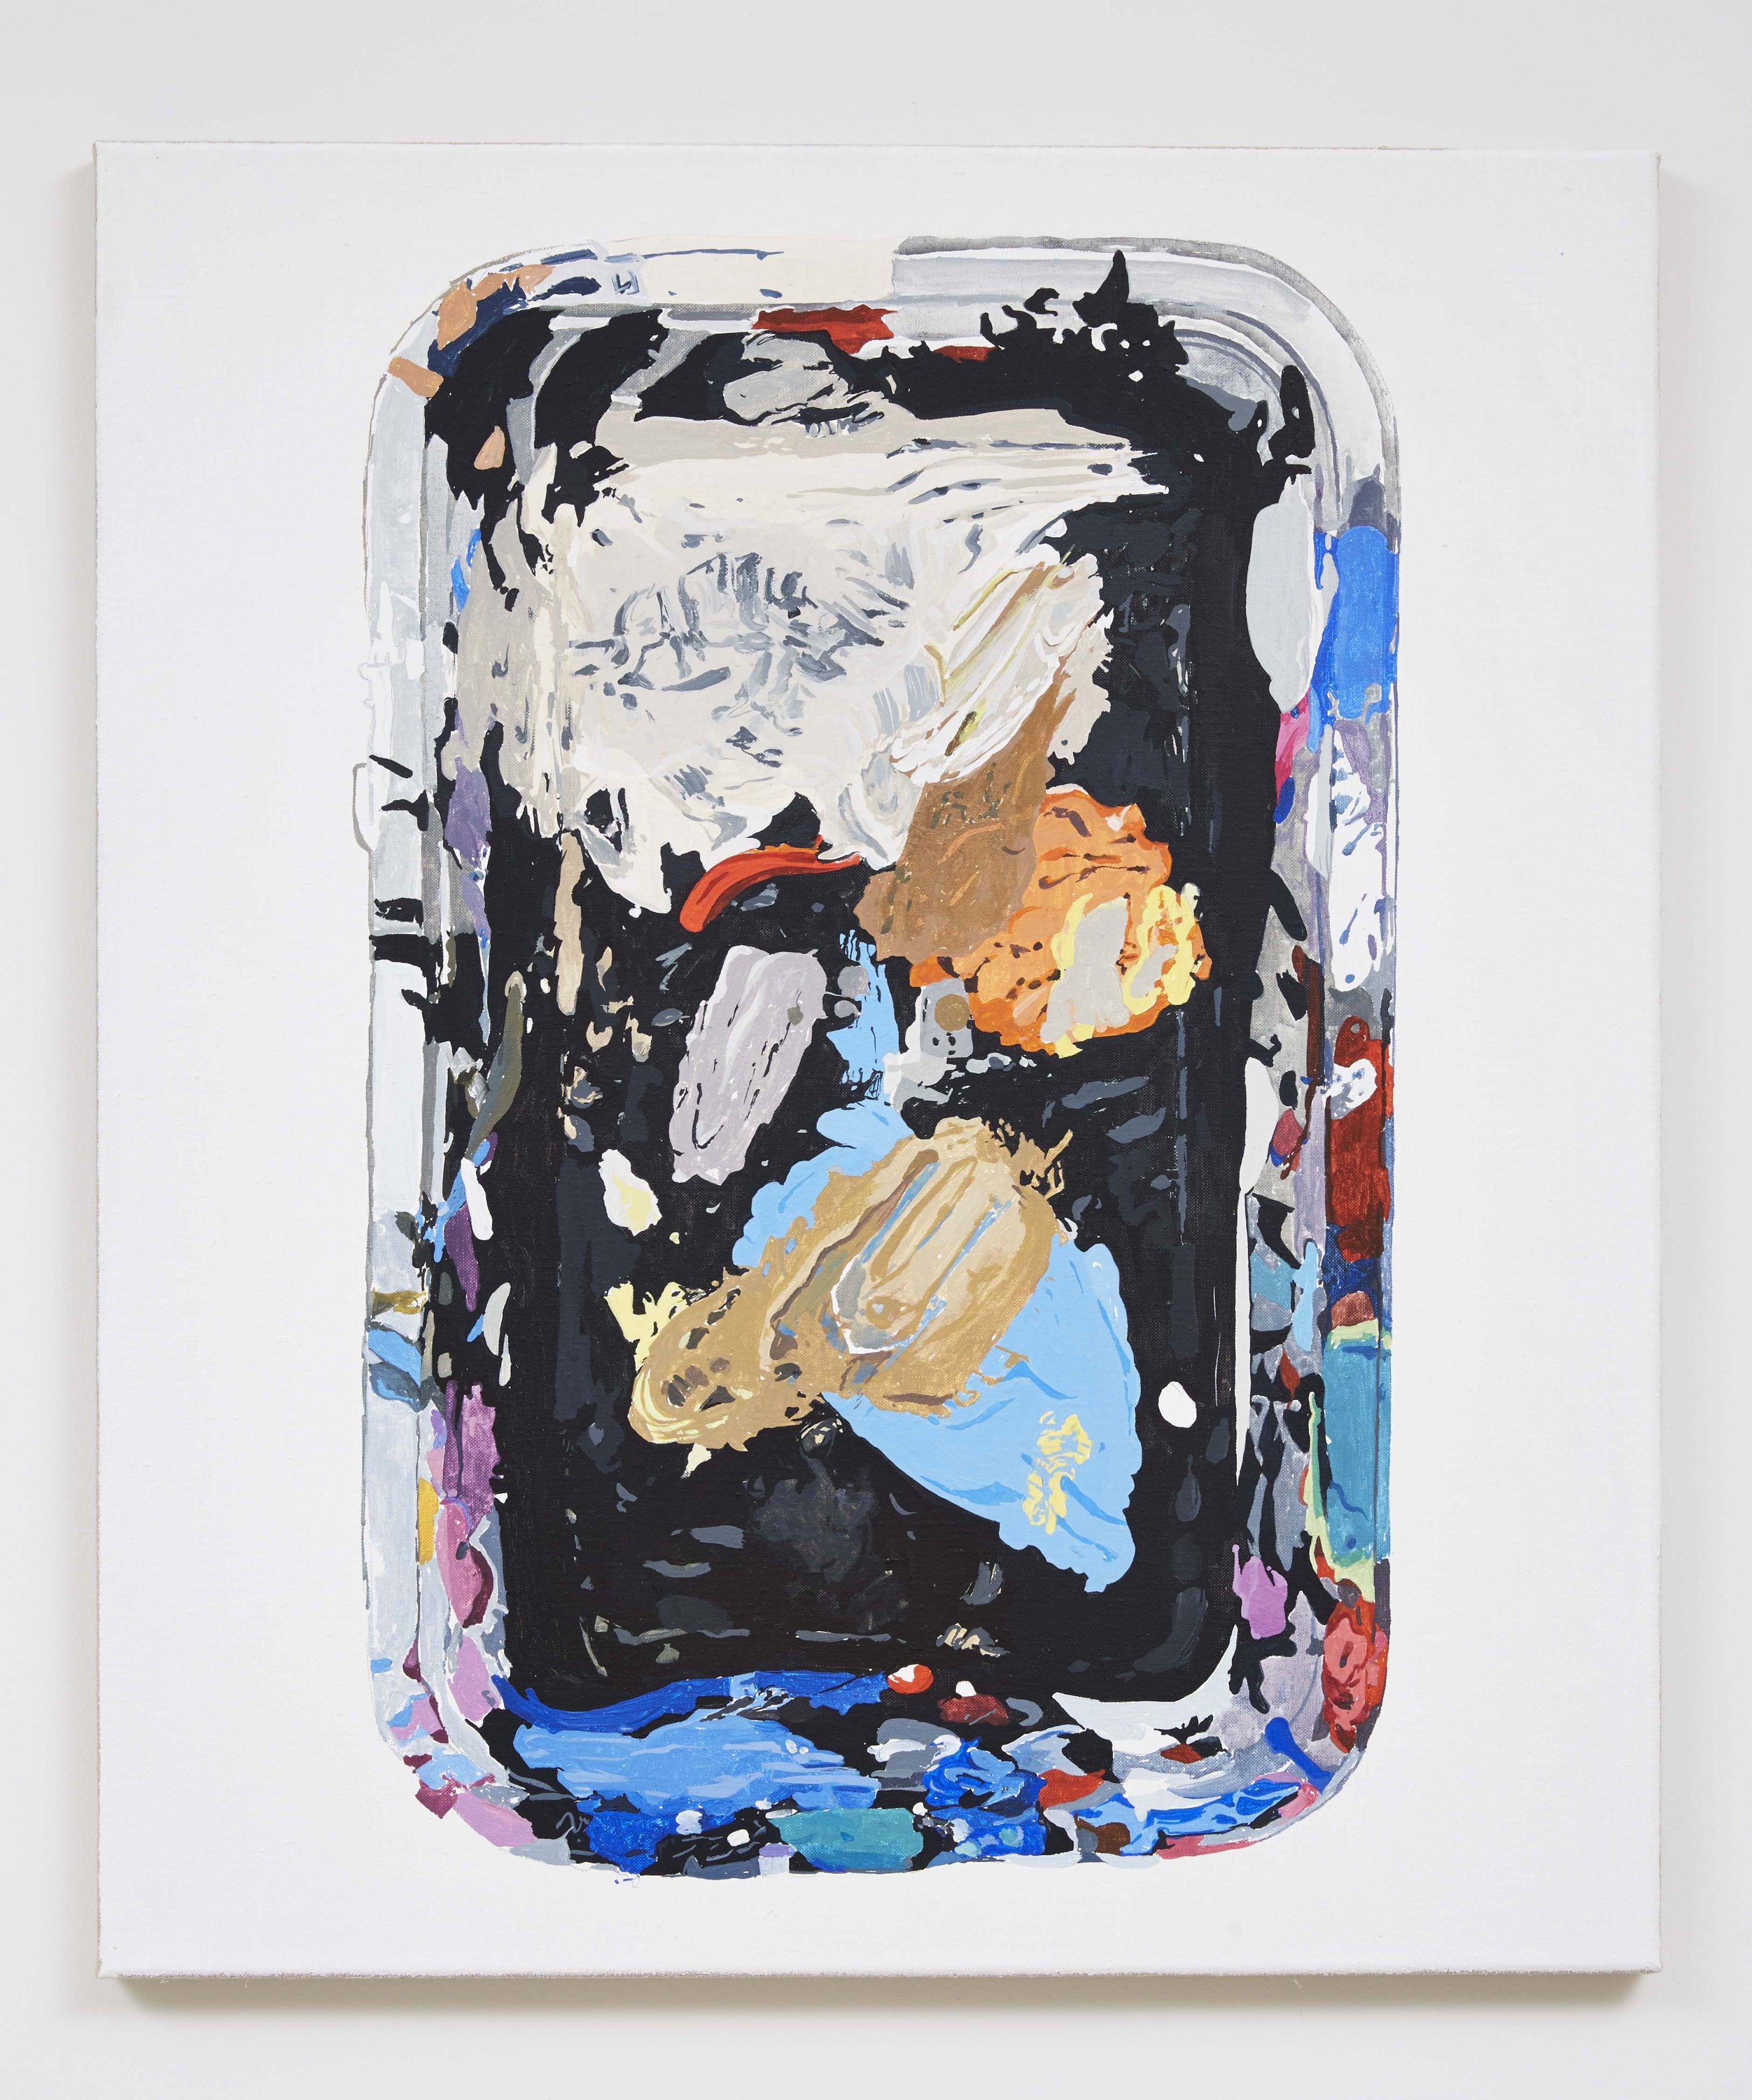 Material Evidence (Tray), 2014, Acrylic on linen